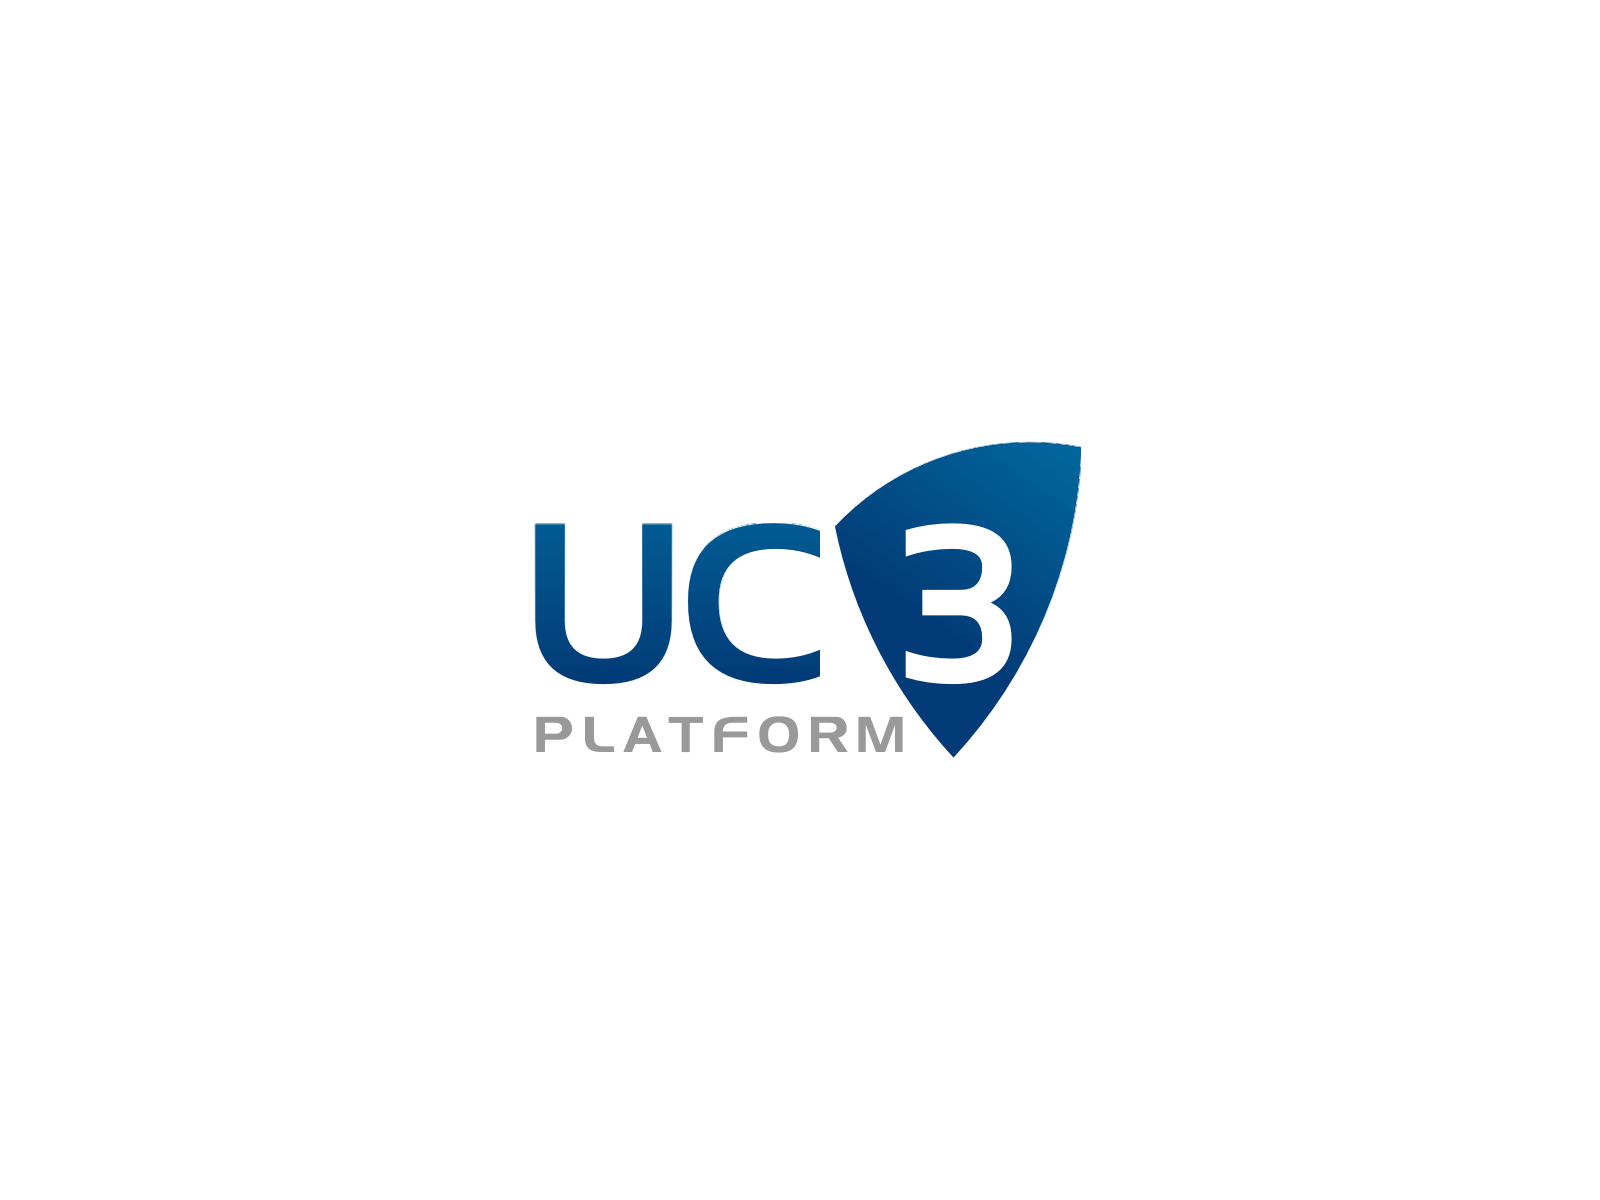 UC3 Platform   |   Orion Services    (two separate, but related logos) needs a new logo